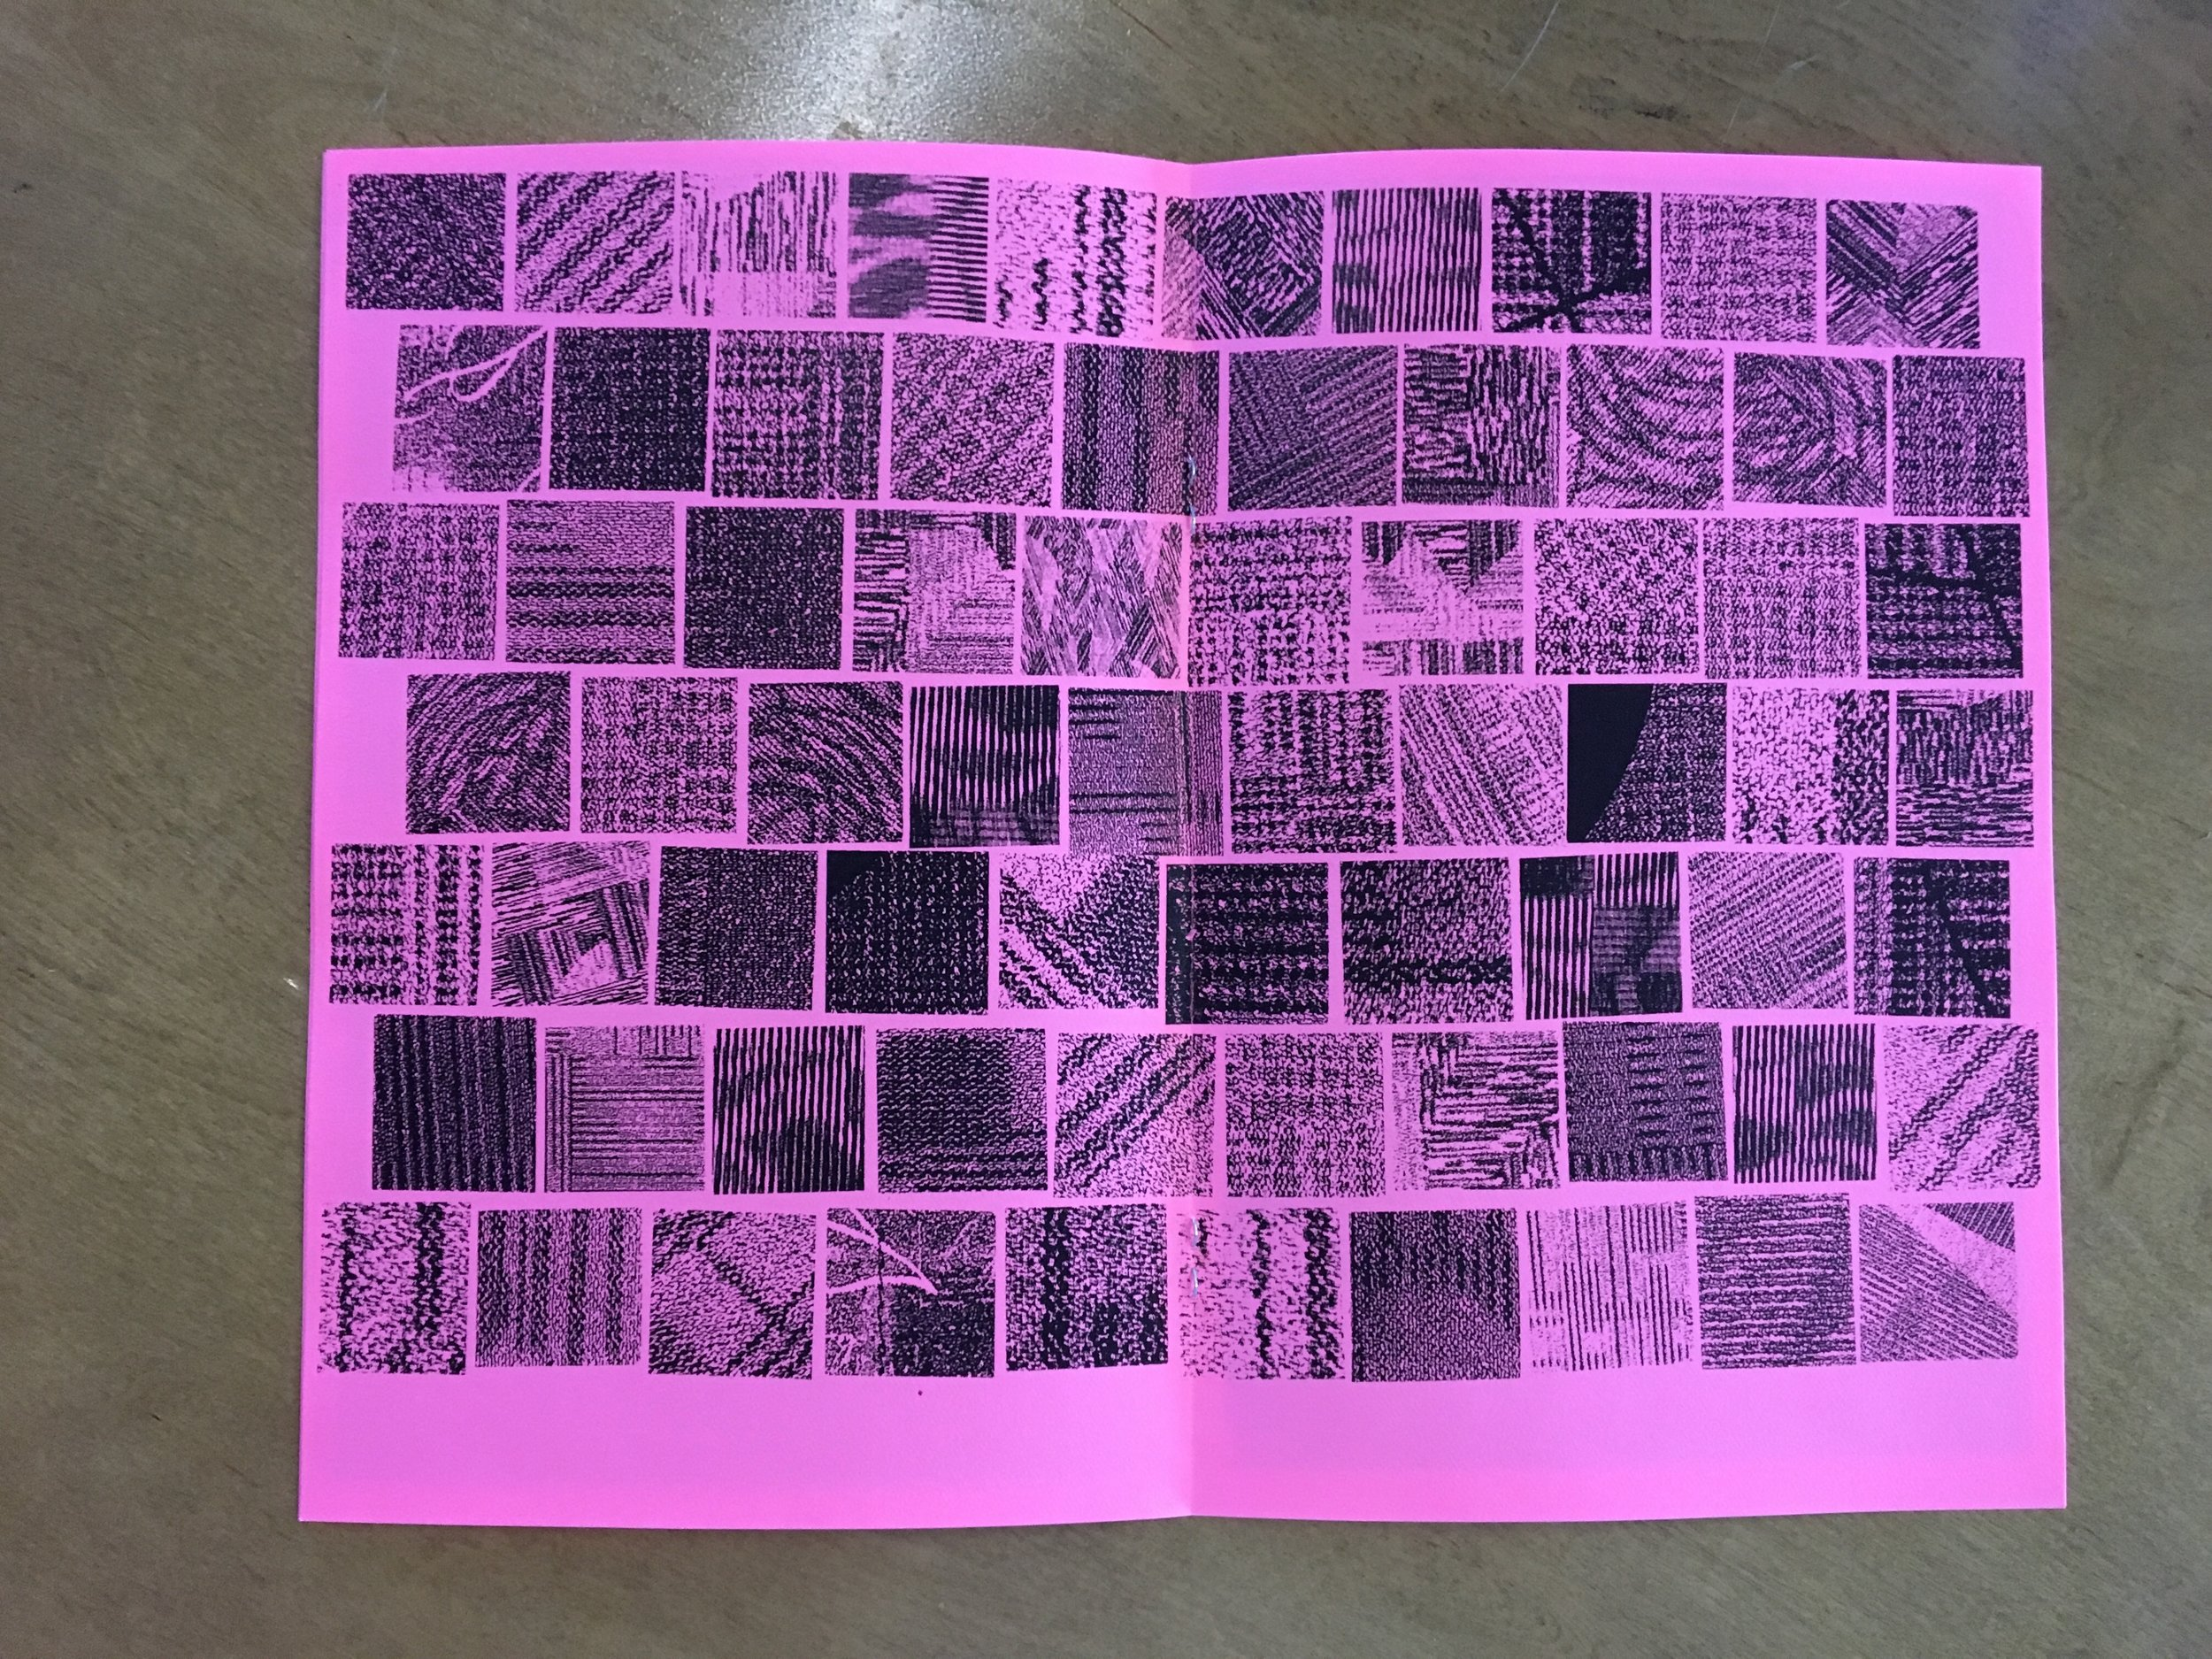 ALONE // Airport Carpet Zine: final book layout (centerfold)